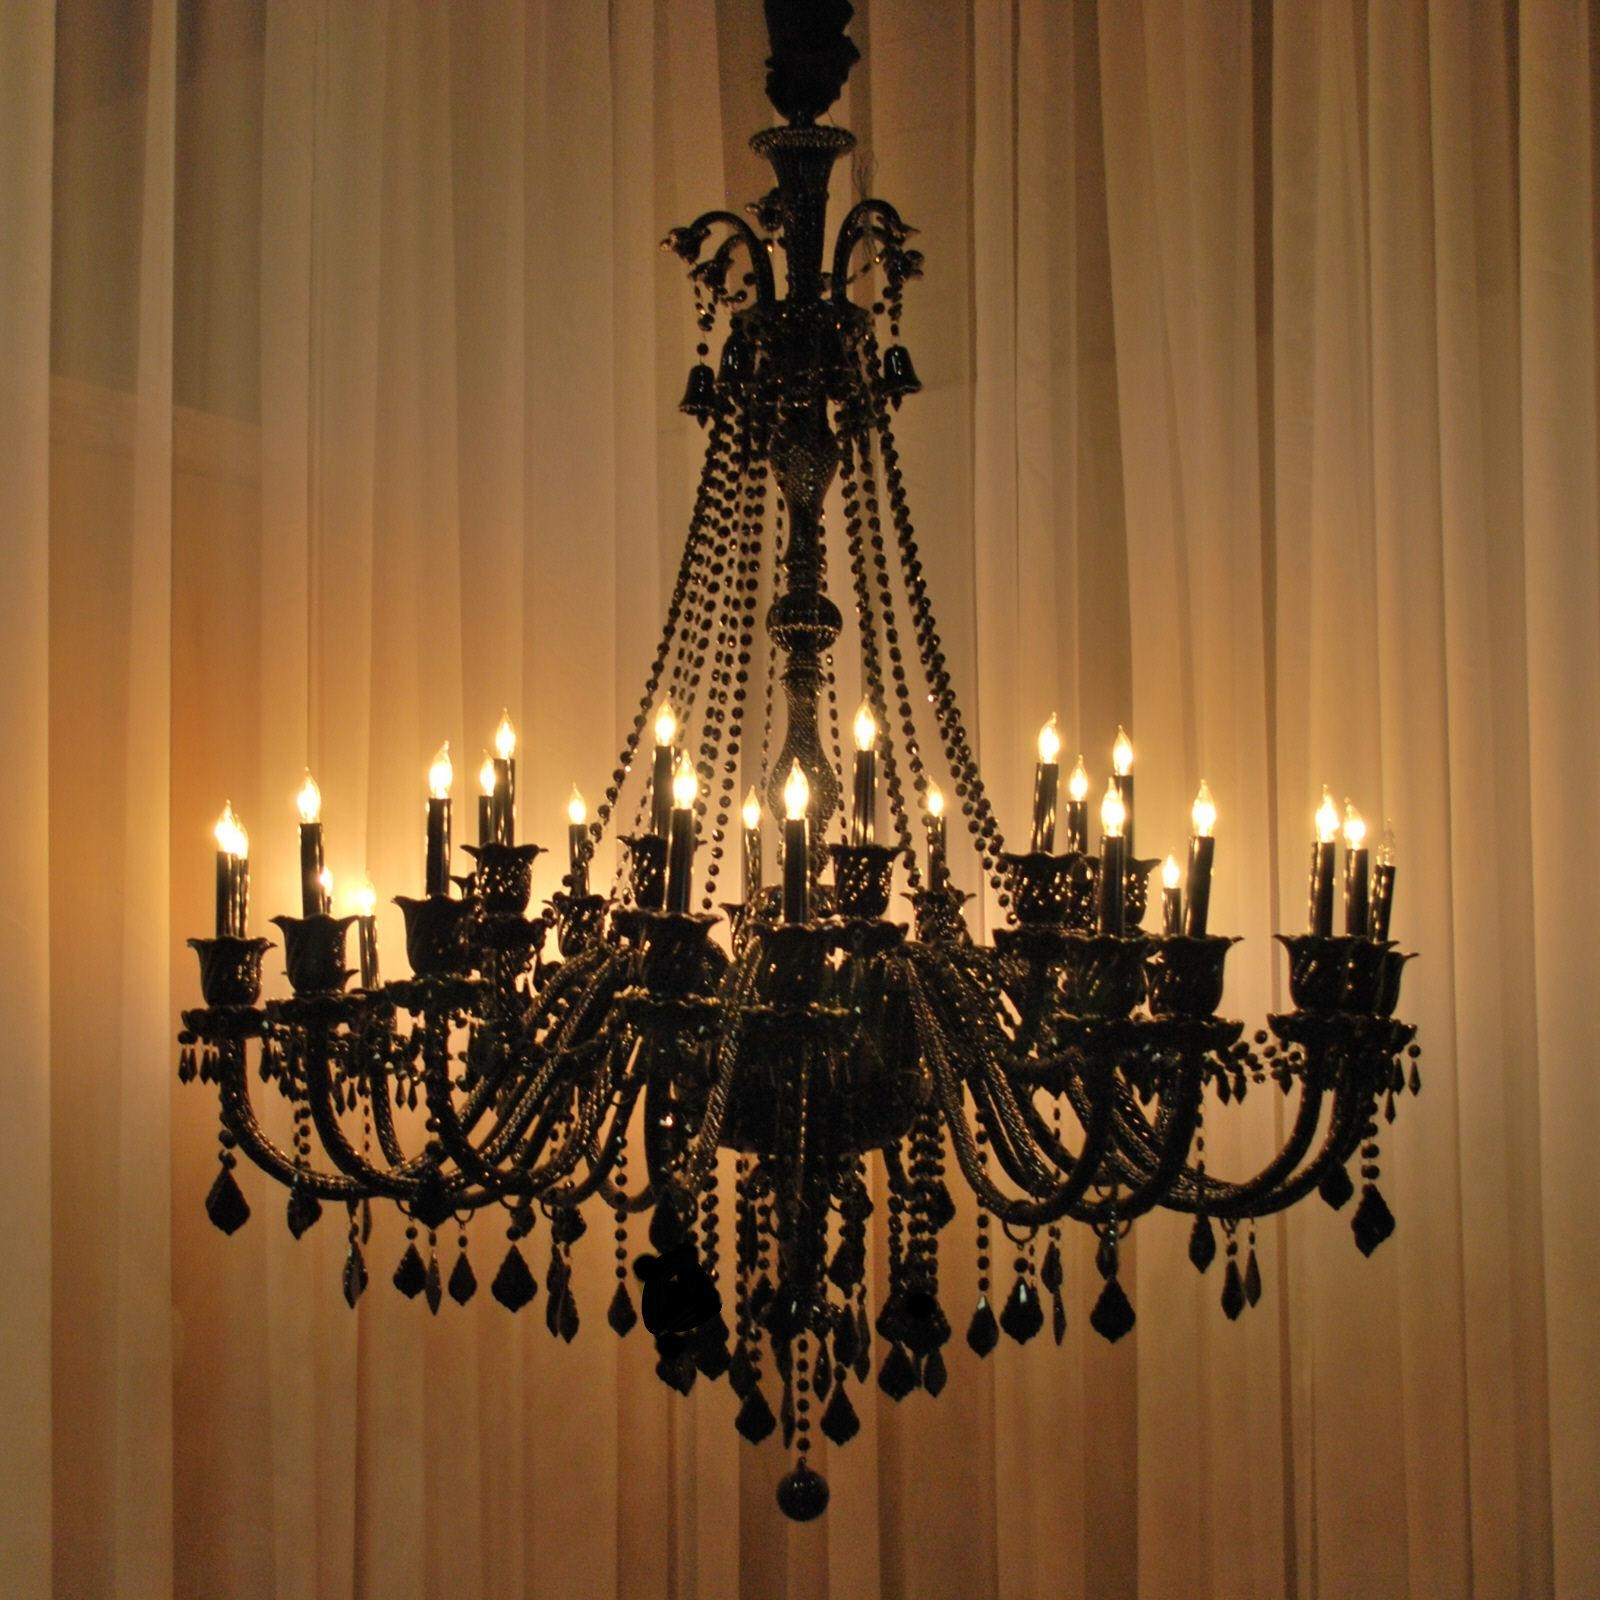 Large Chandeliers Large Crystal Chandeliers Intended For Extra Large Chandeliers (Image 13 of 15)